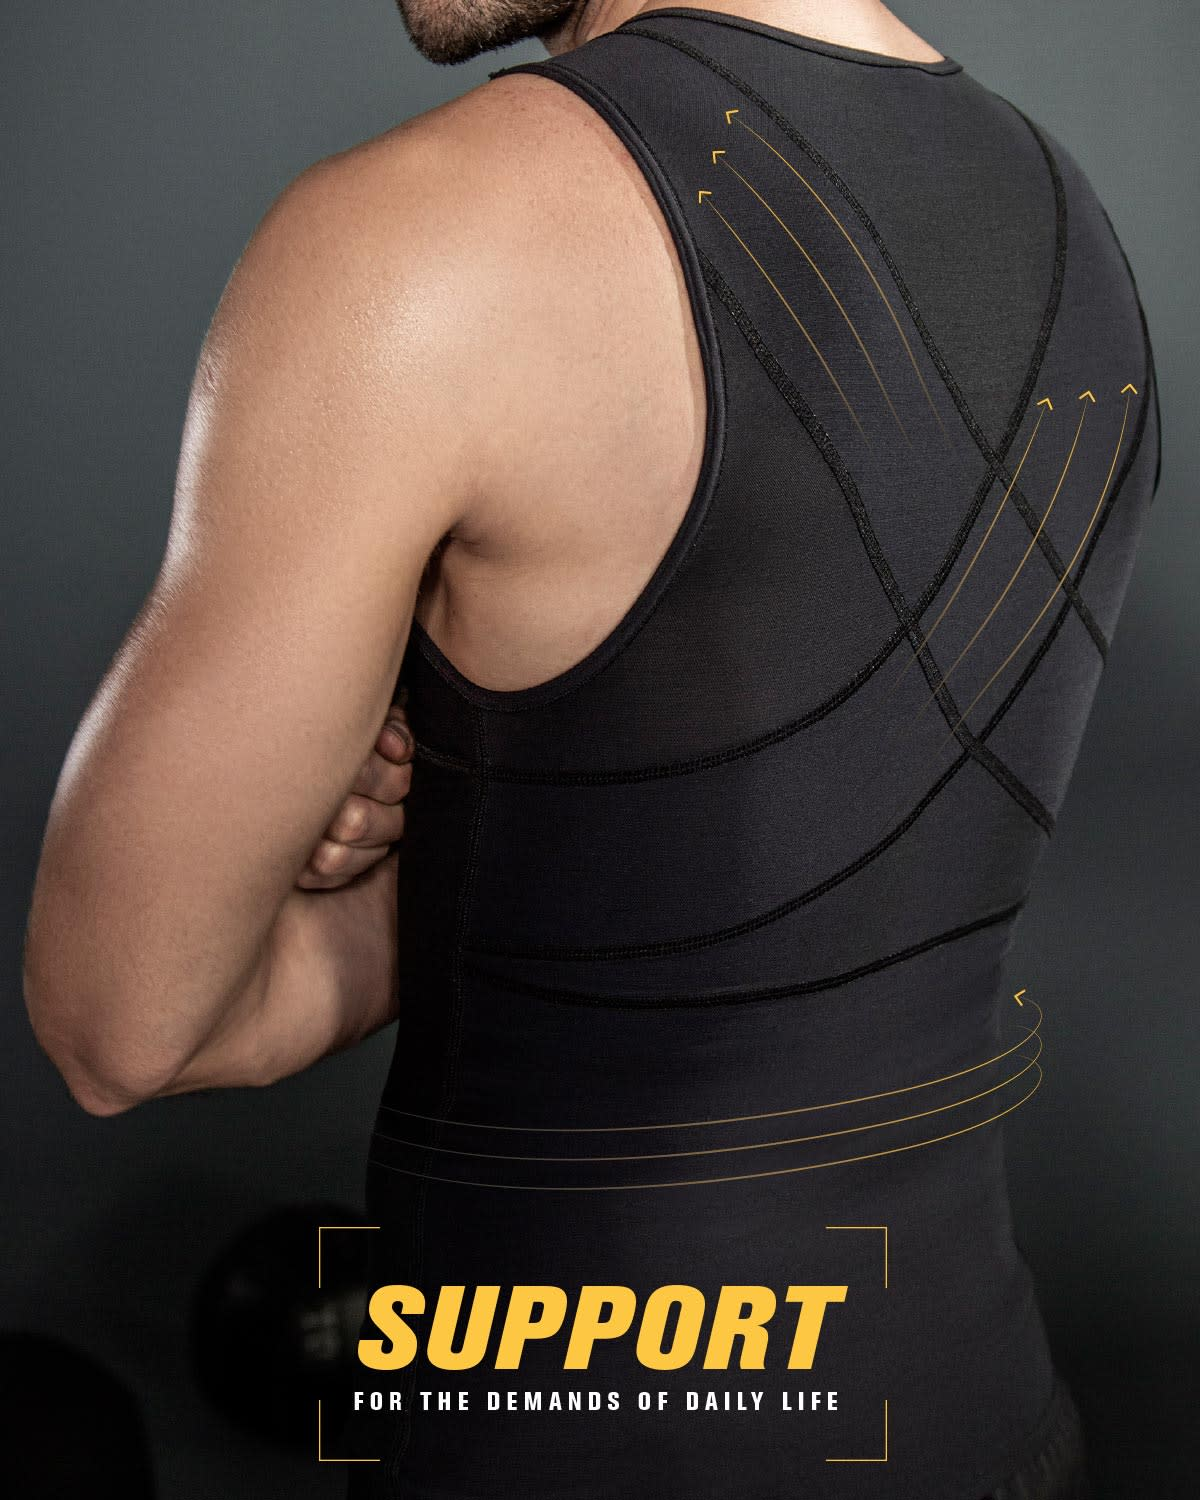 9f48290be Men s Abs Slimming Body Shaper with Back Support